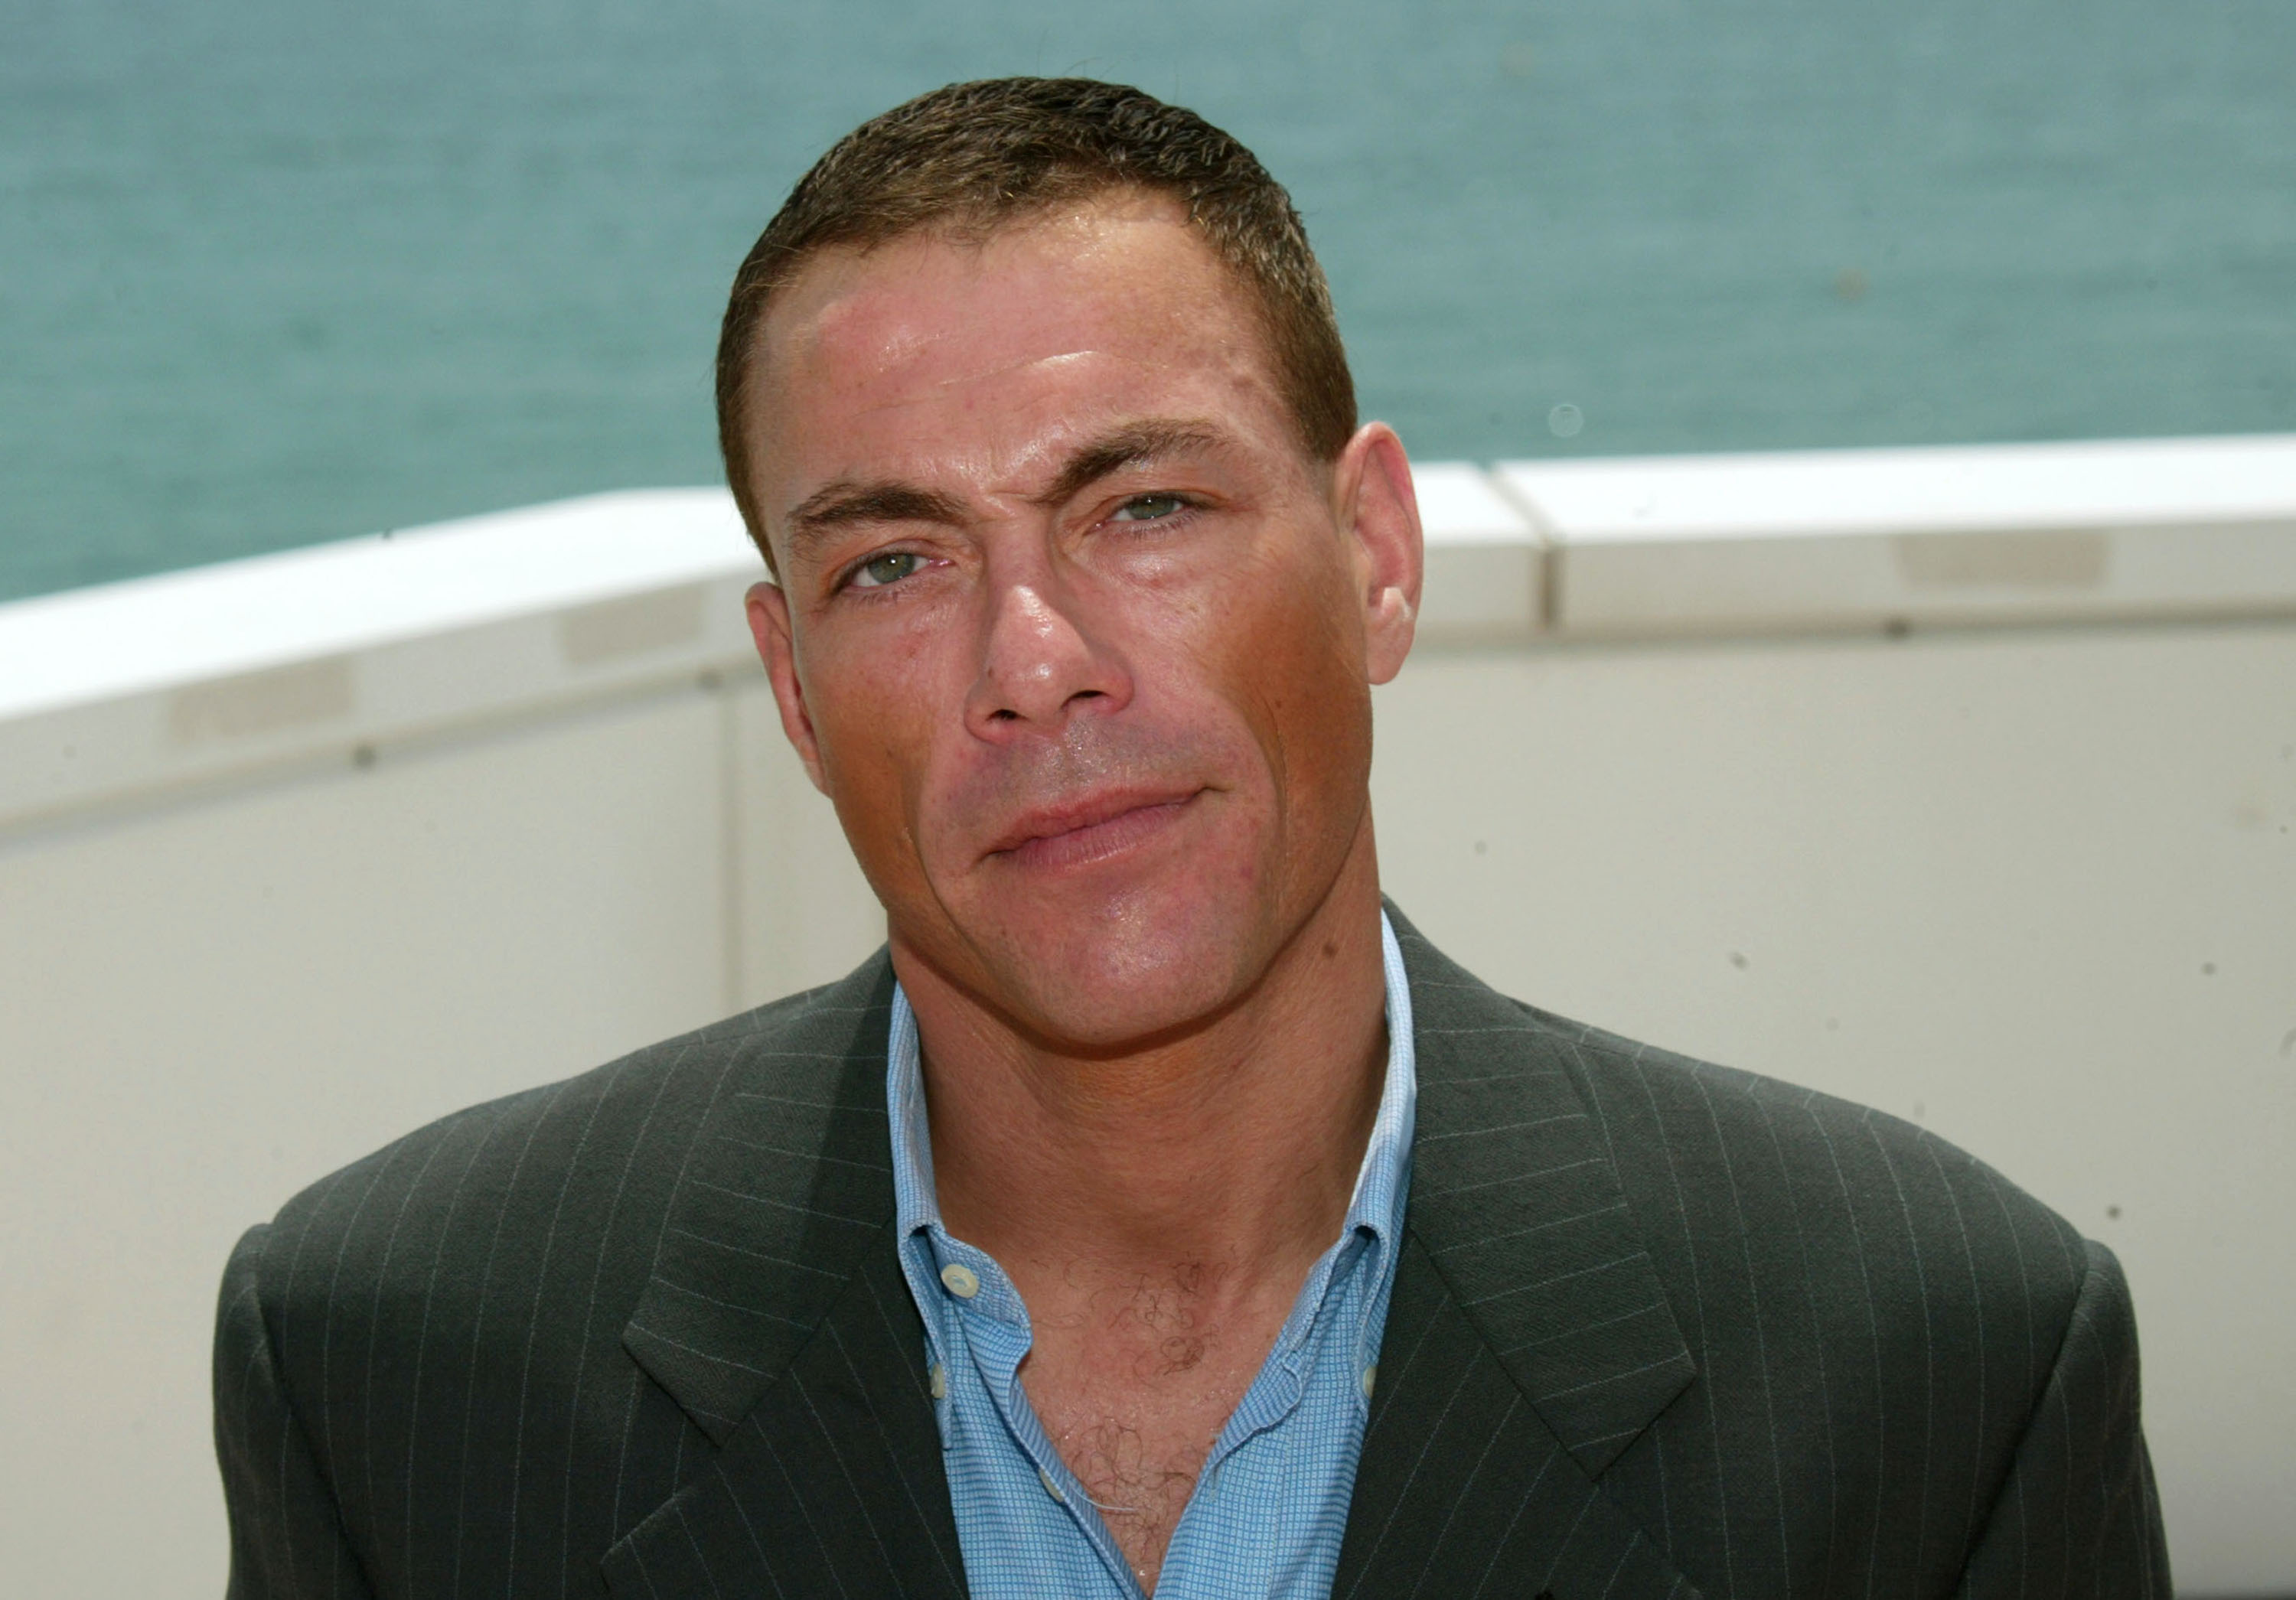 Actor Jean-Claude Van Damme poses during a photocall on the roof at the Noga Hilton during 56th International Cannes Film Festival 2003 on May 18, 2003 in Cannes, France.